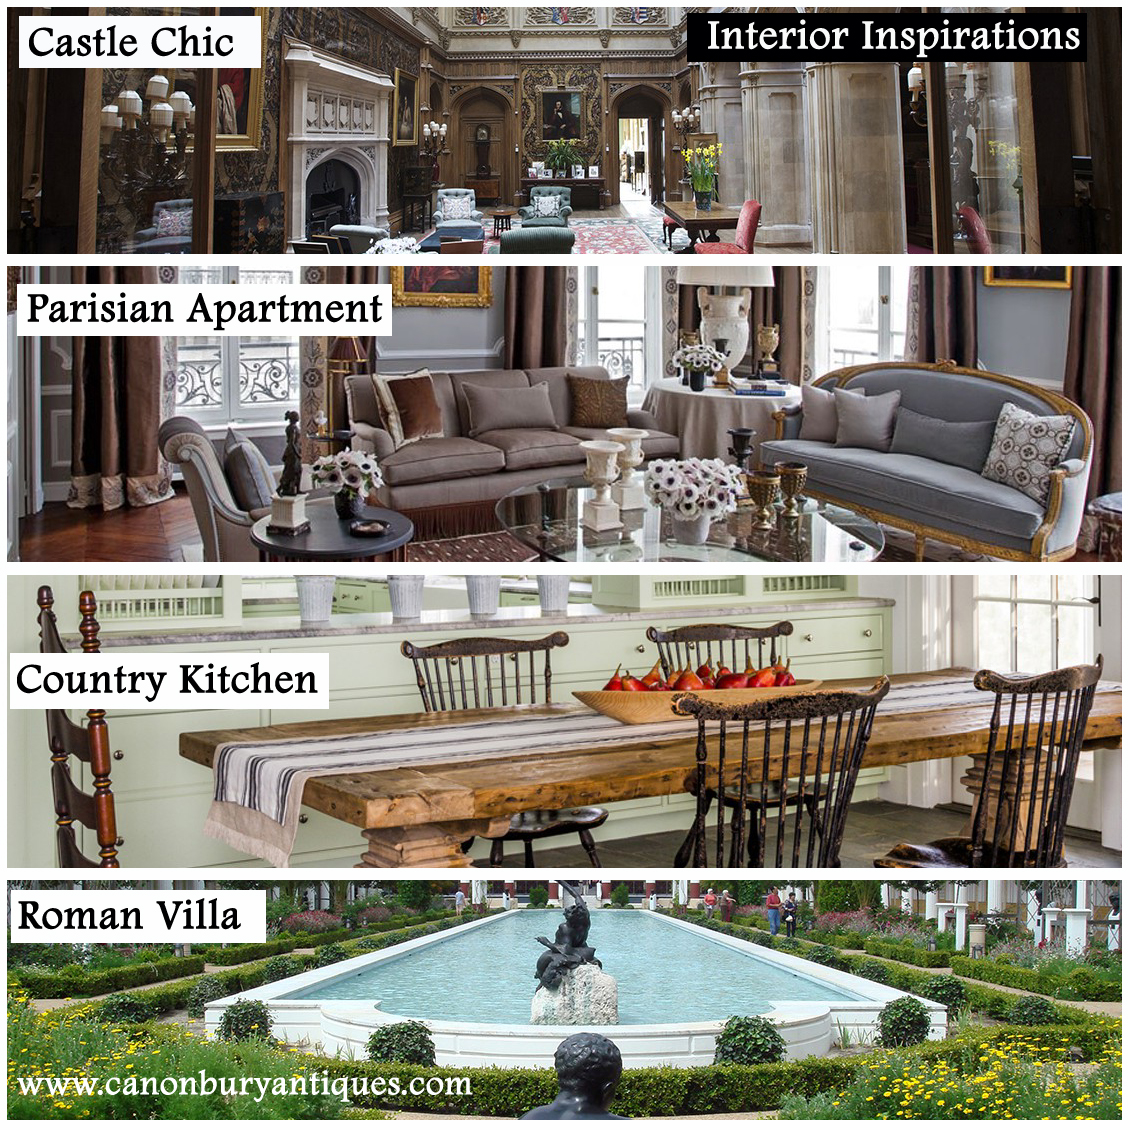 Shop by Interior Inspiration - room, style or look.